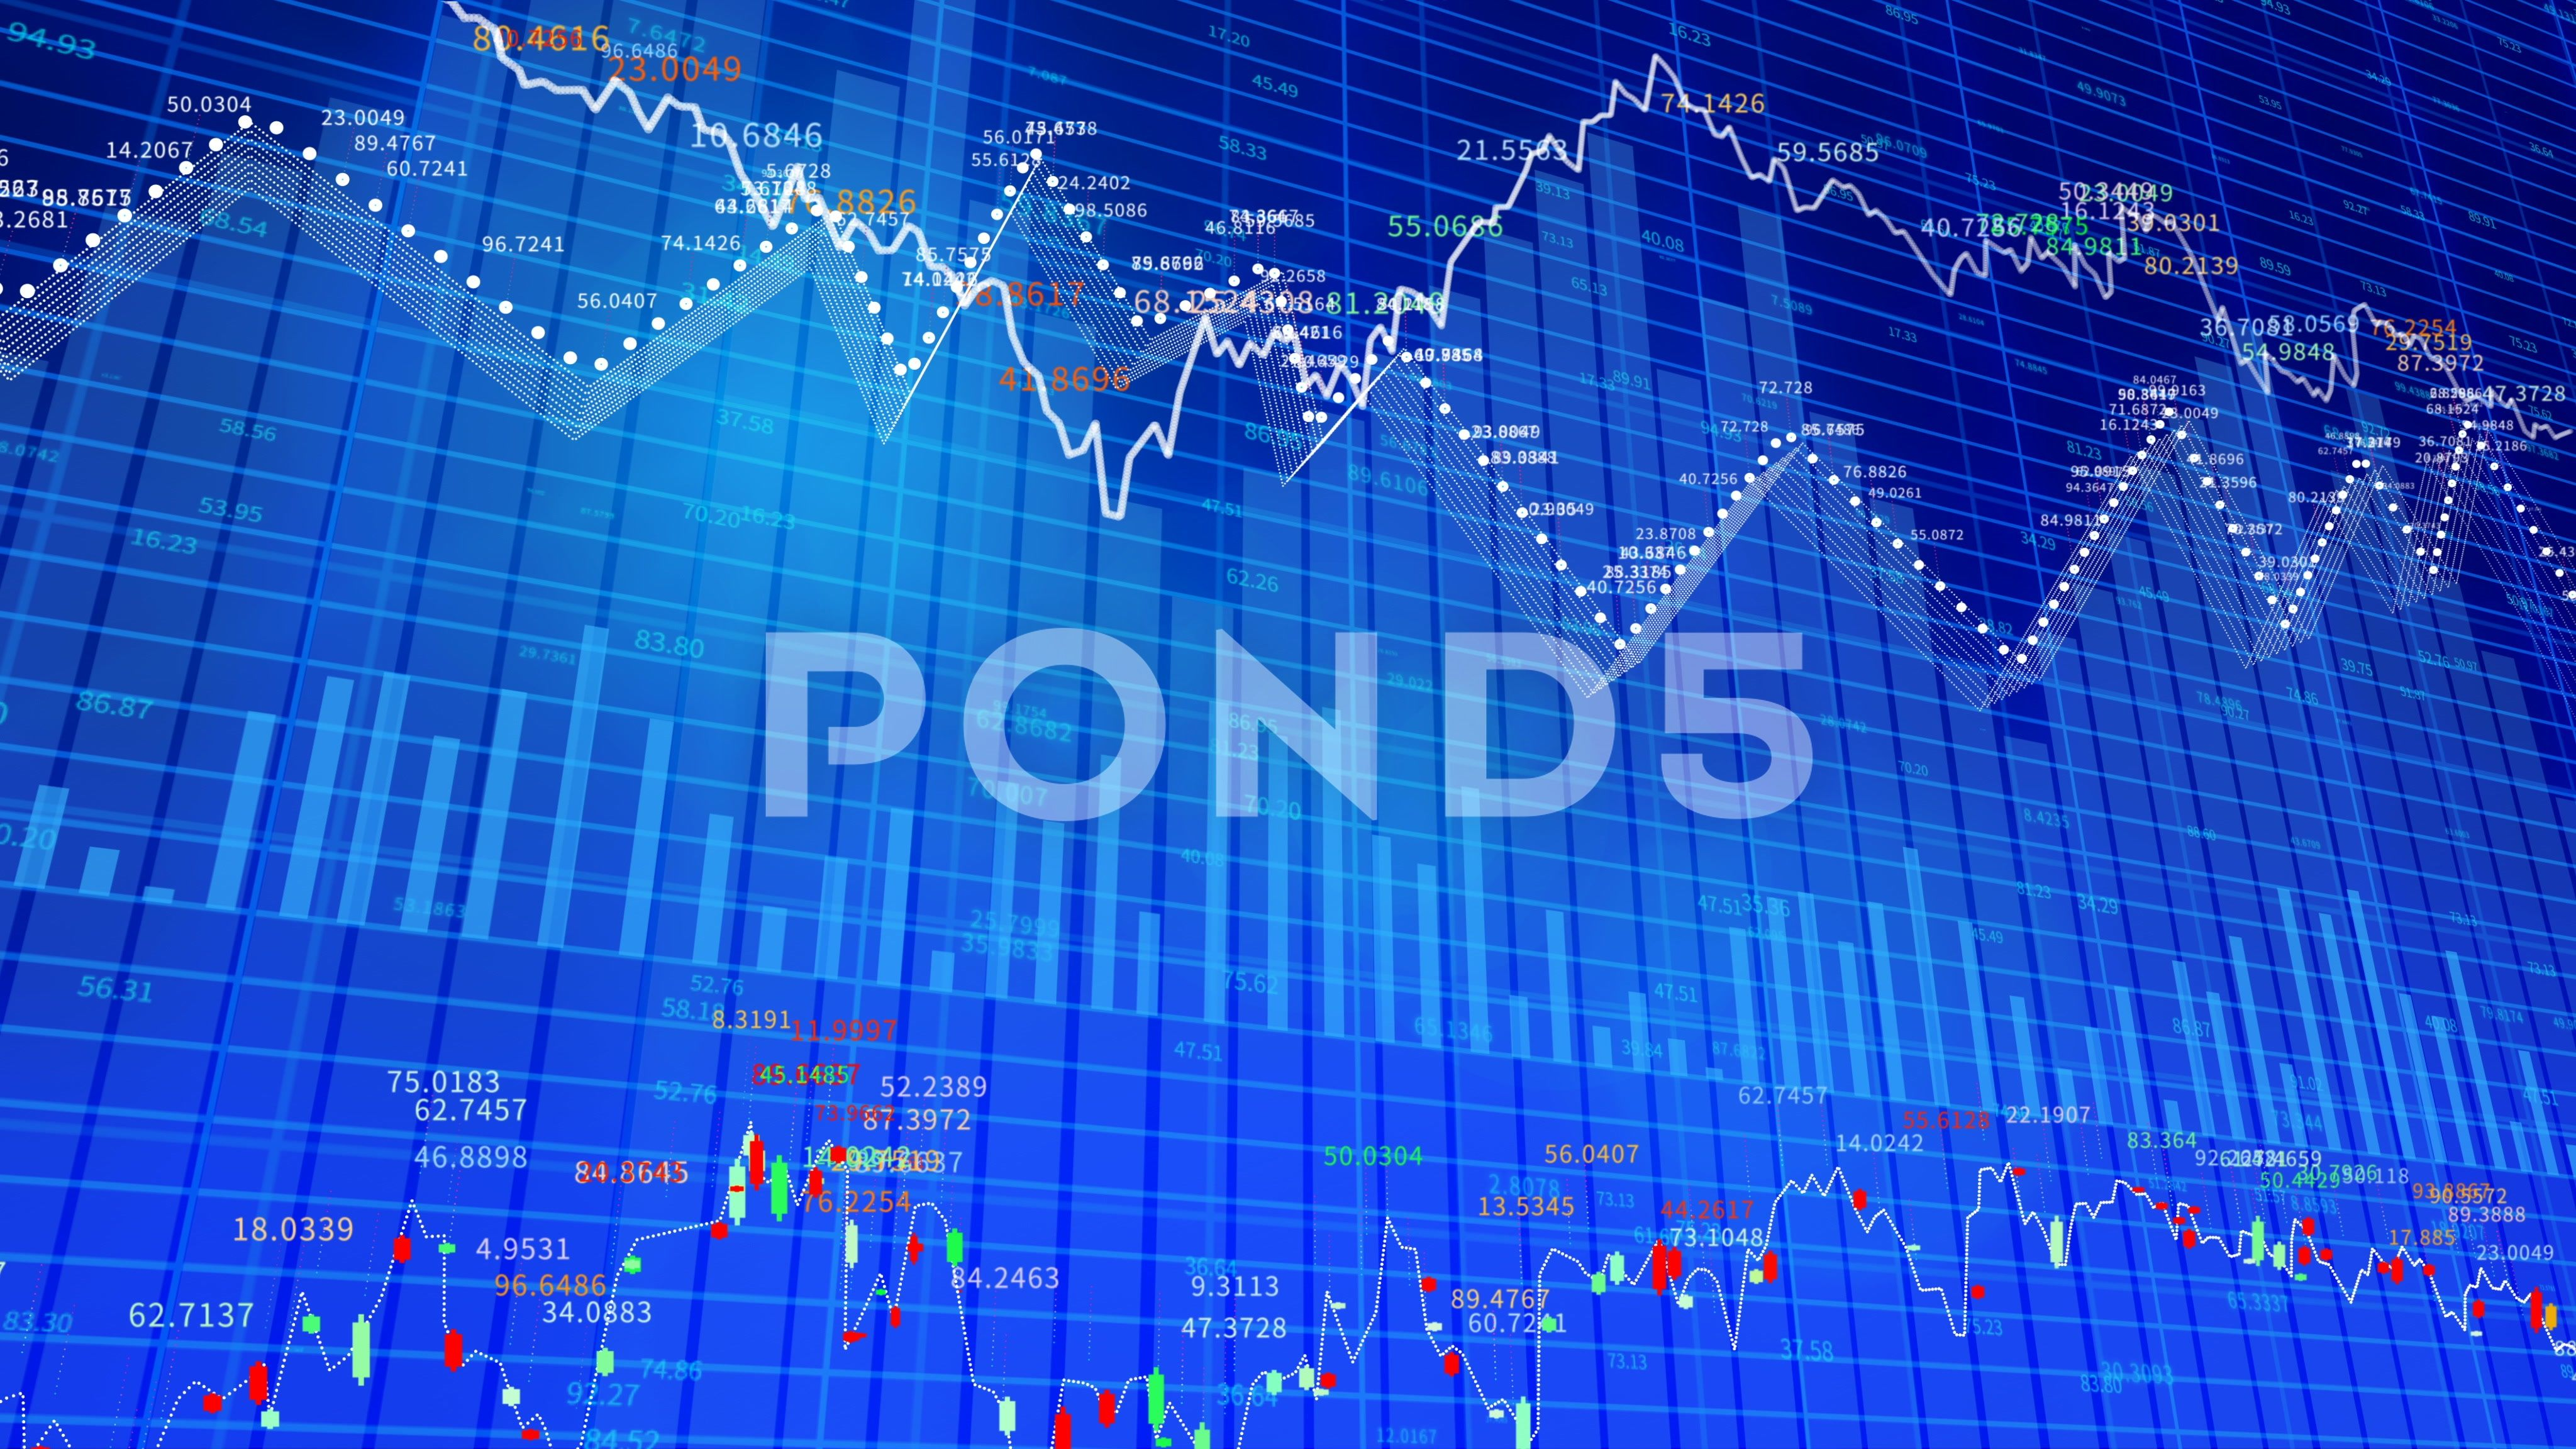 4k Hud Graph And Bar Stats Stock Market Business Data Visualization Stock Footage Ad Stats Stock Bar Hud Business Data Data Visualization Stock Market